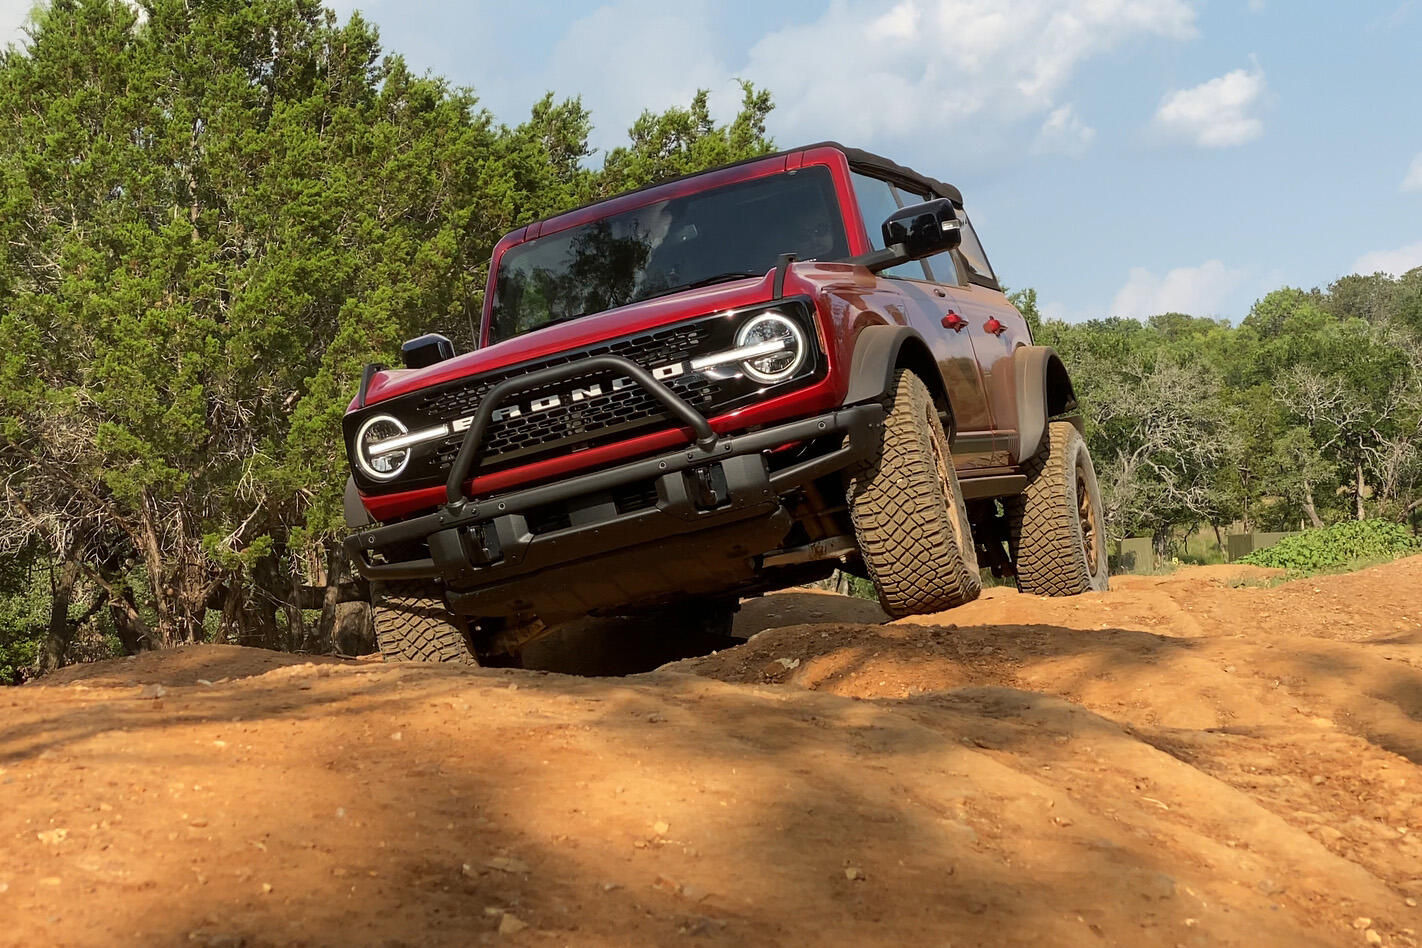 2021 Ford Bronco - four-door off-roading